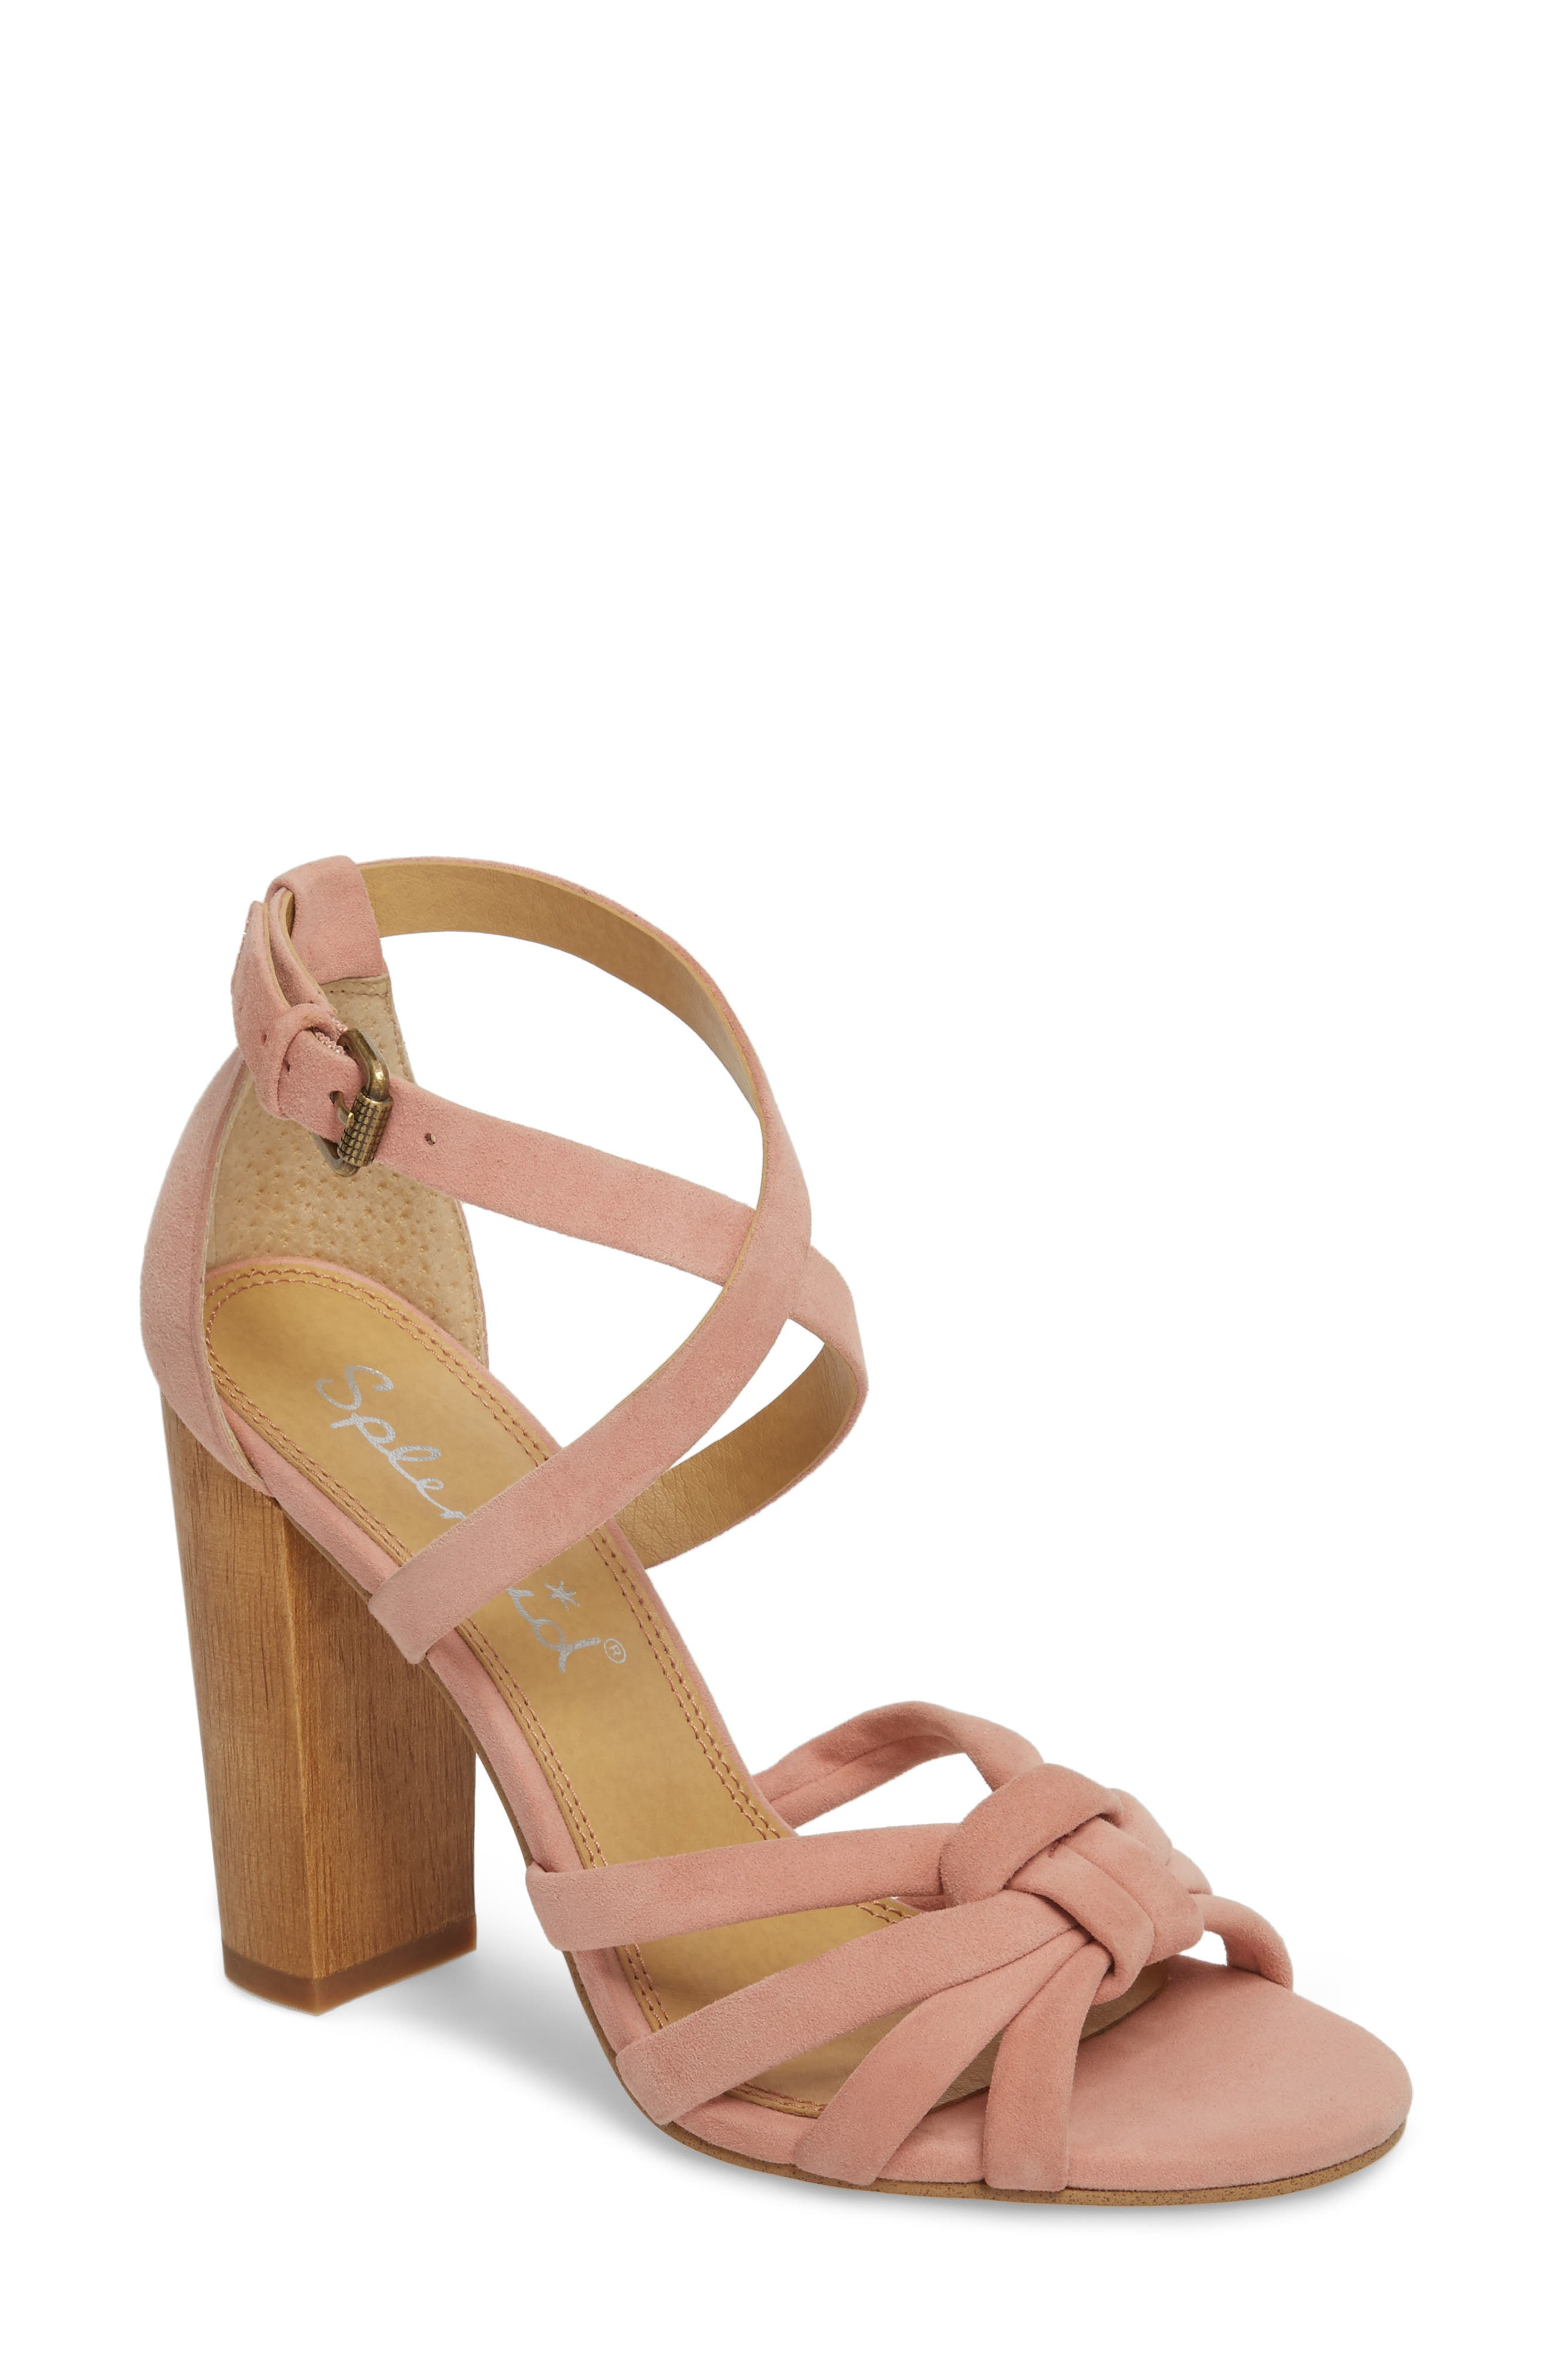 Faris Block Heel Sandal,                         Main,                         color, Blush Suede